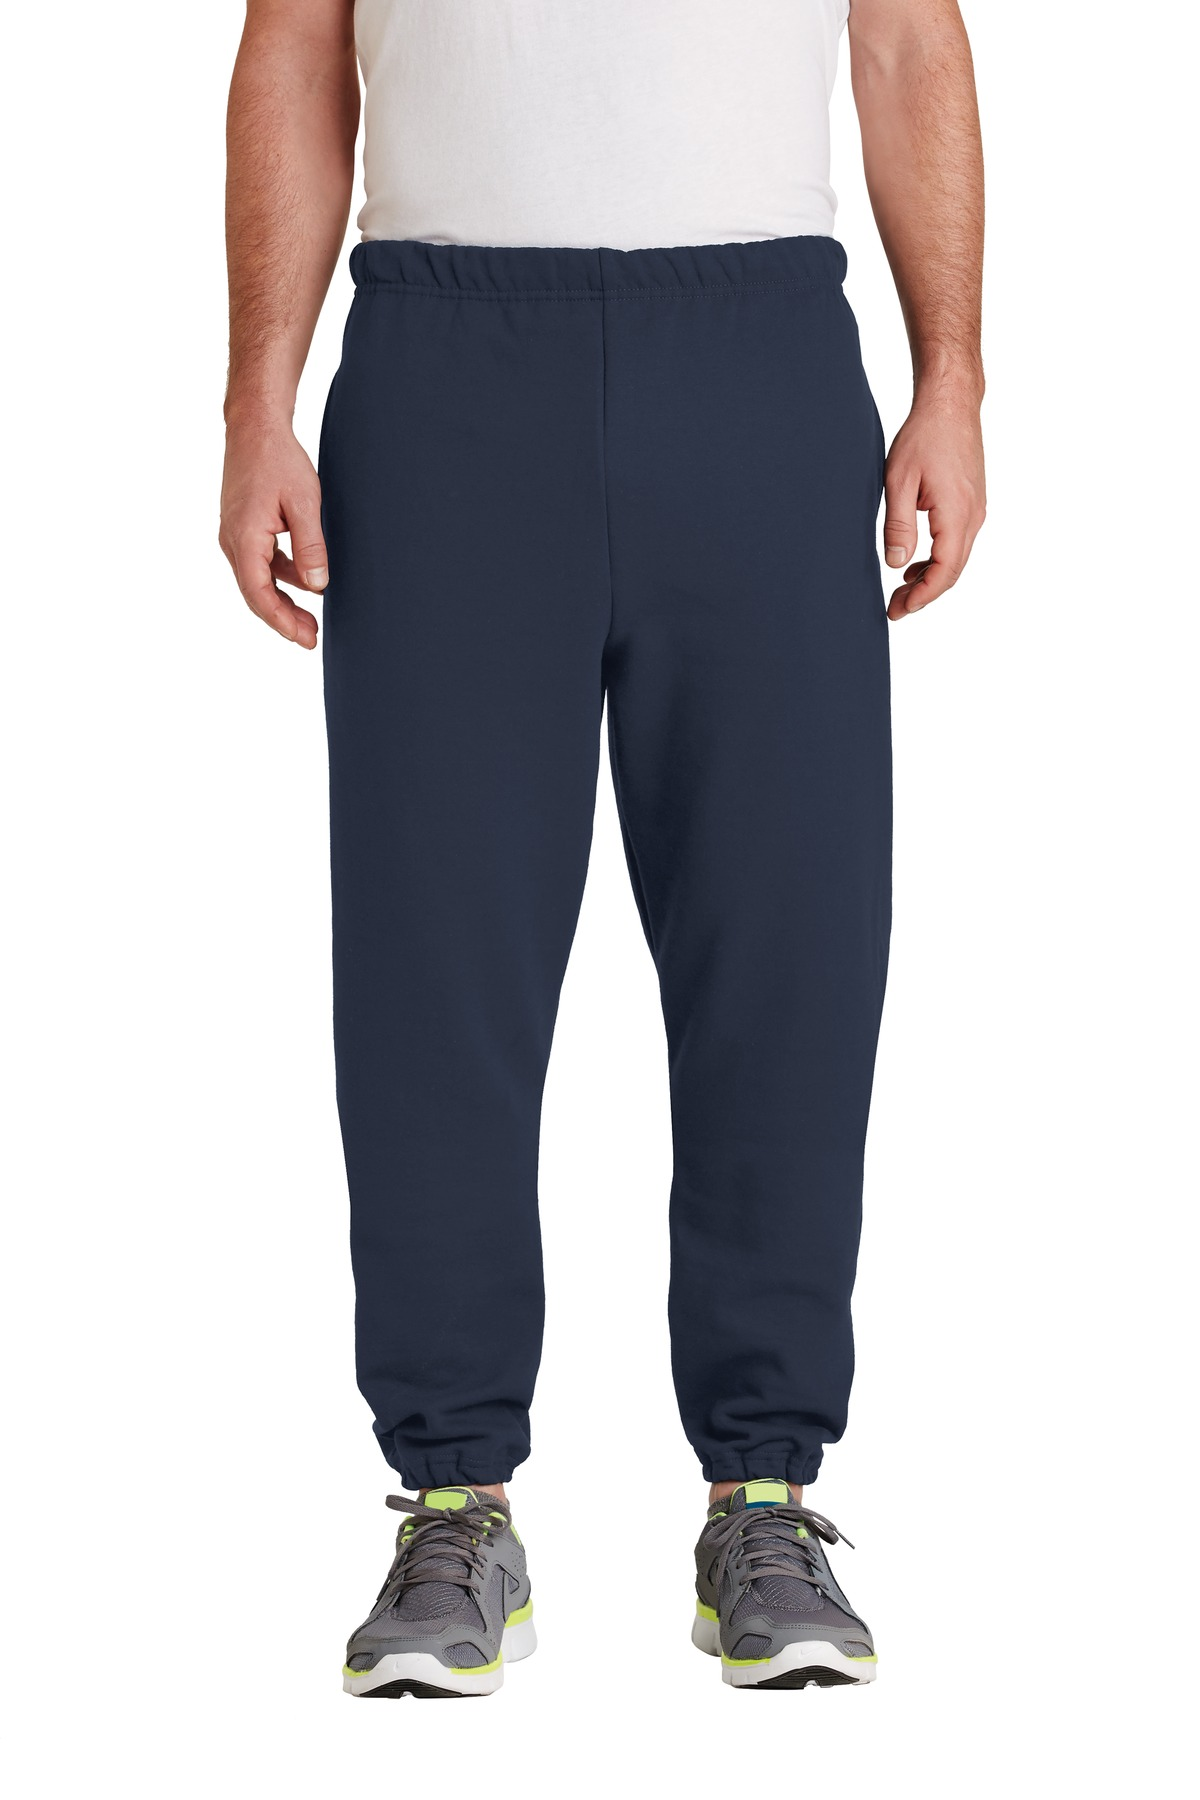 JERZEES ®  SUPER SWEATS ®  NuBlend ®  - Sweatpant with Pockets.  4850MP - Navy